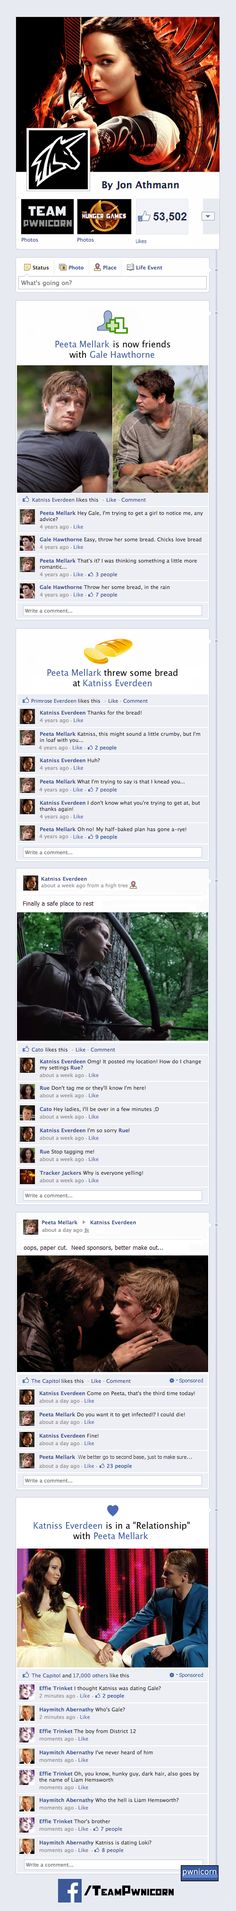 The Hunger Games Told Through Facebook